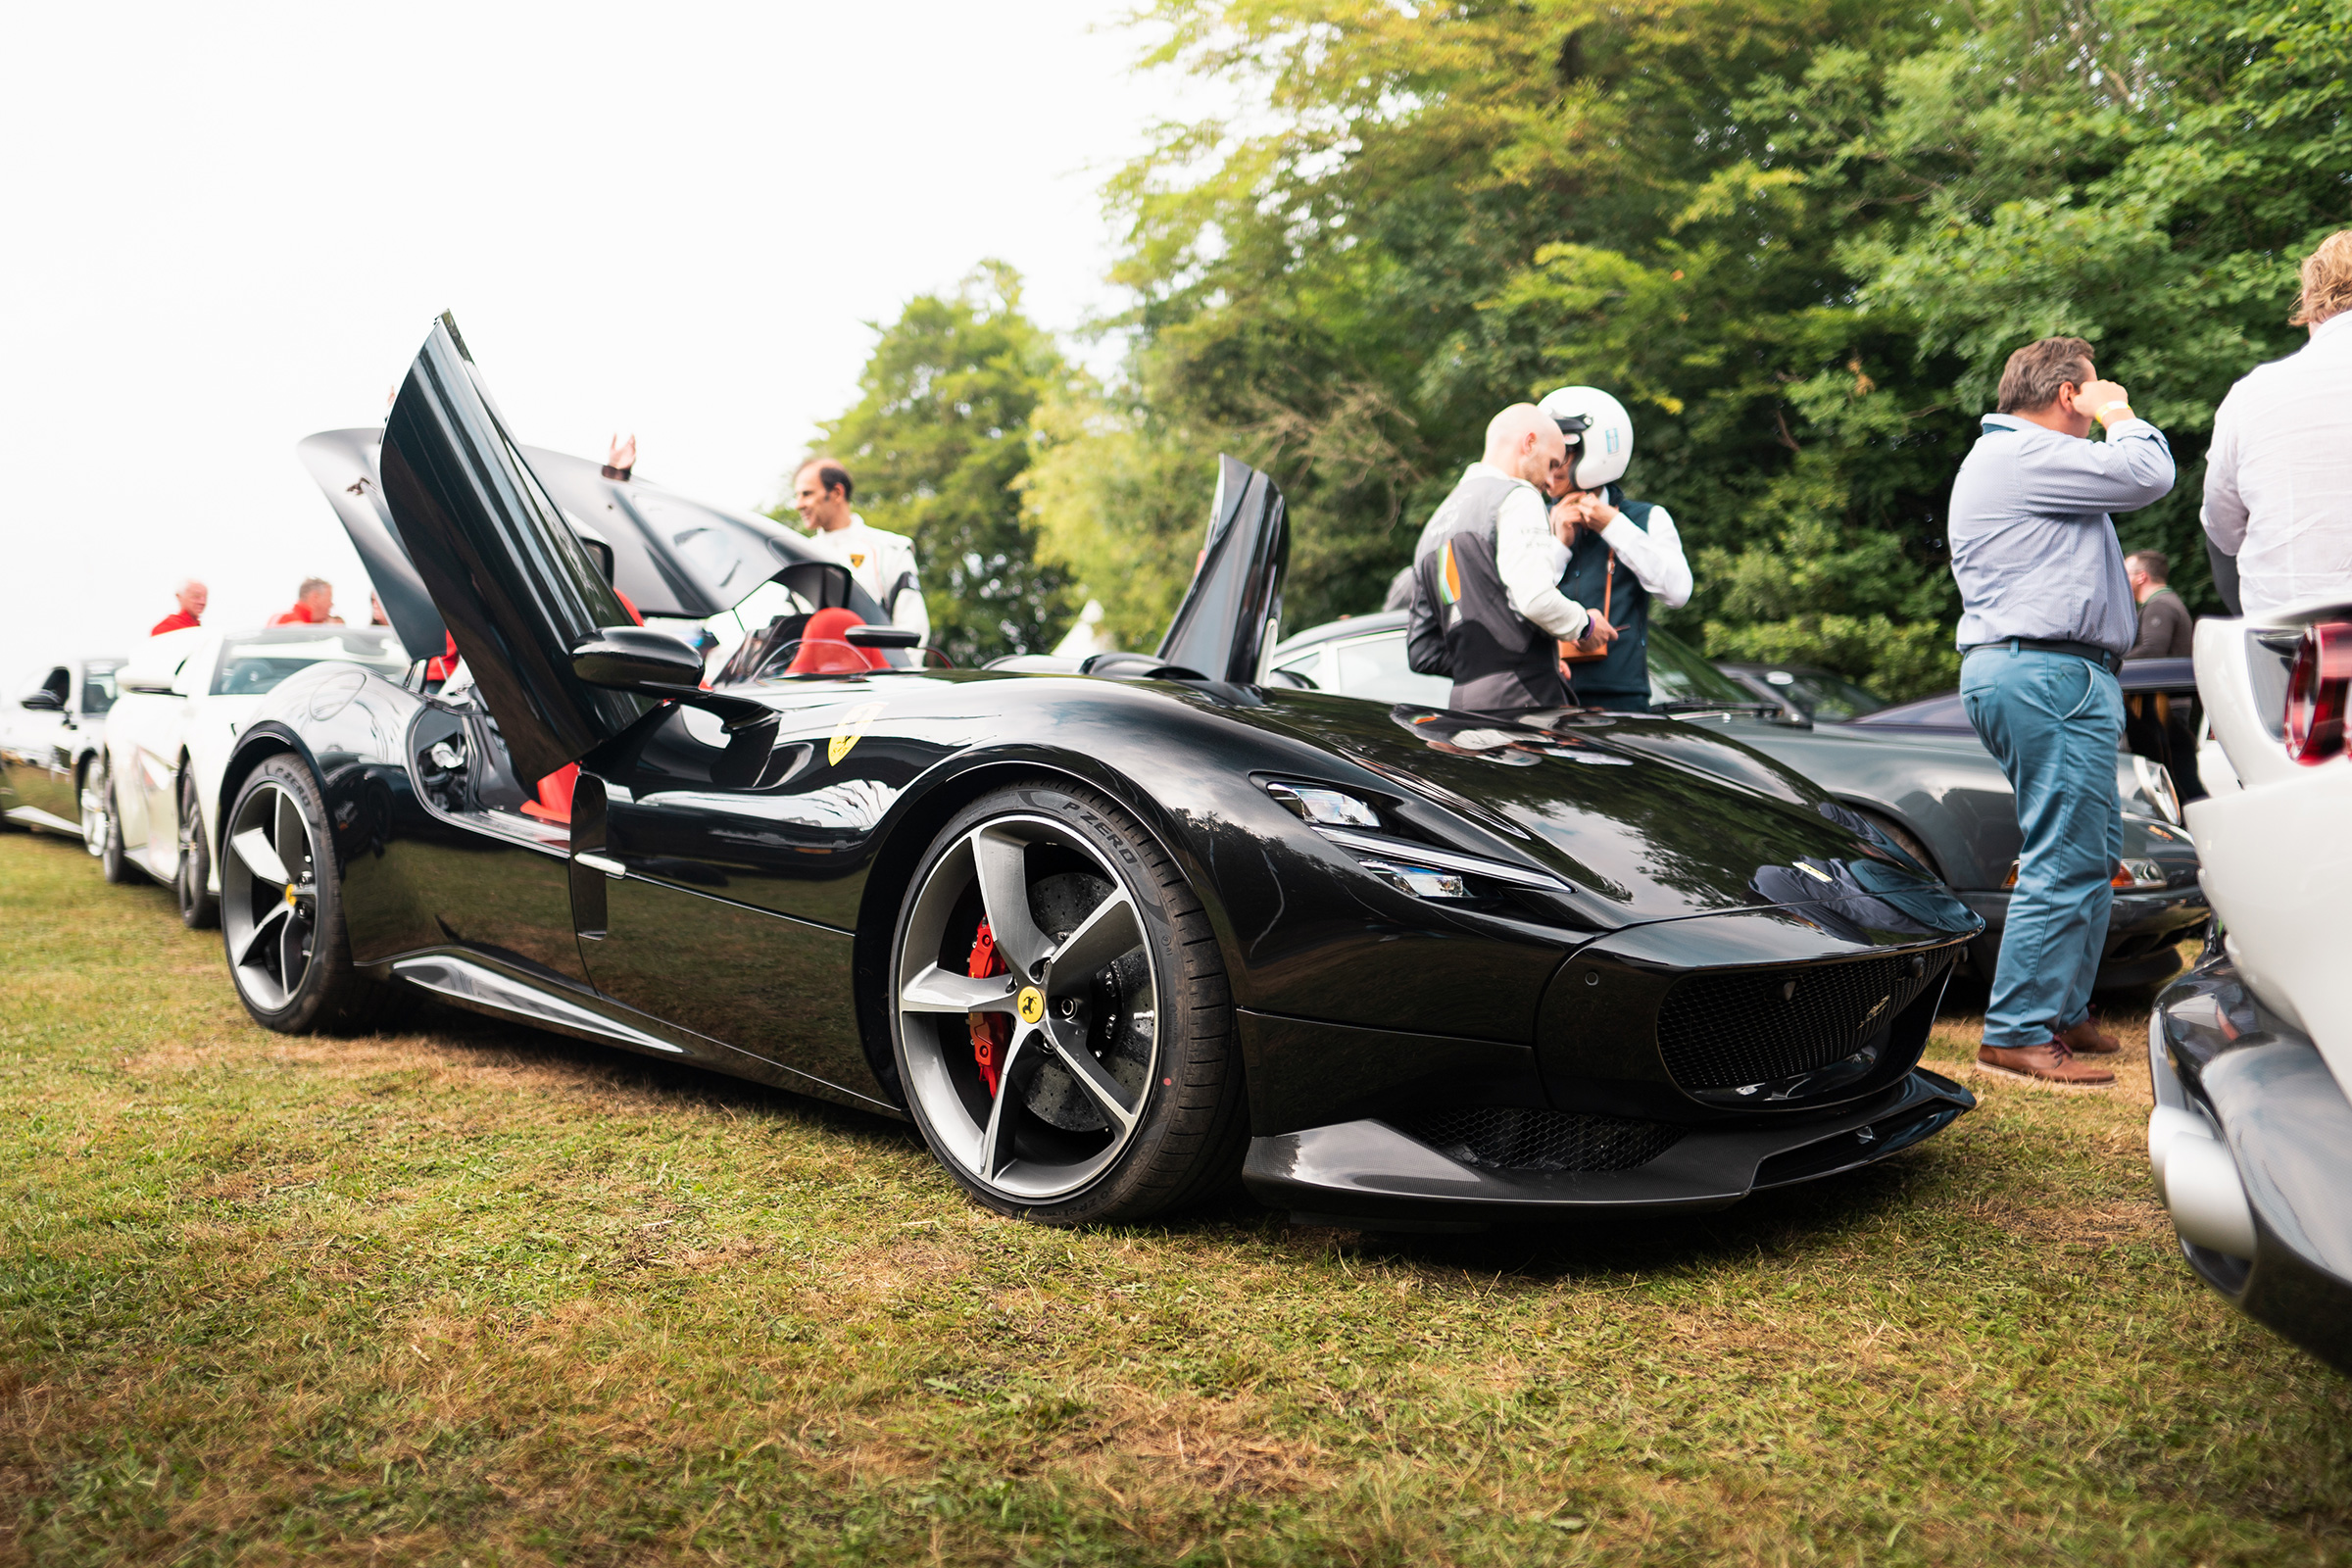 Ferrari Monza Sp2 And Sp1 Full Details And Ride Review On The Ultra Exclusive V12s Evo